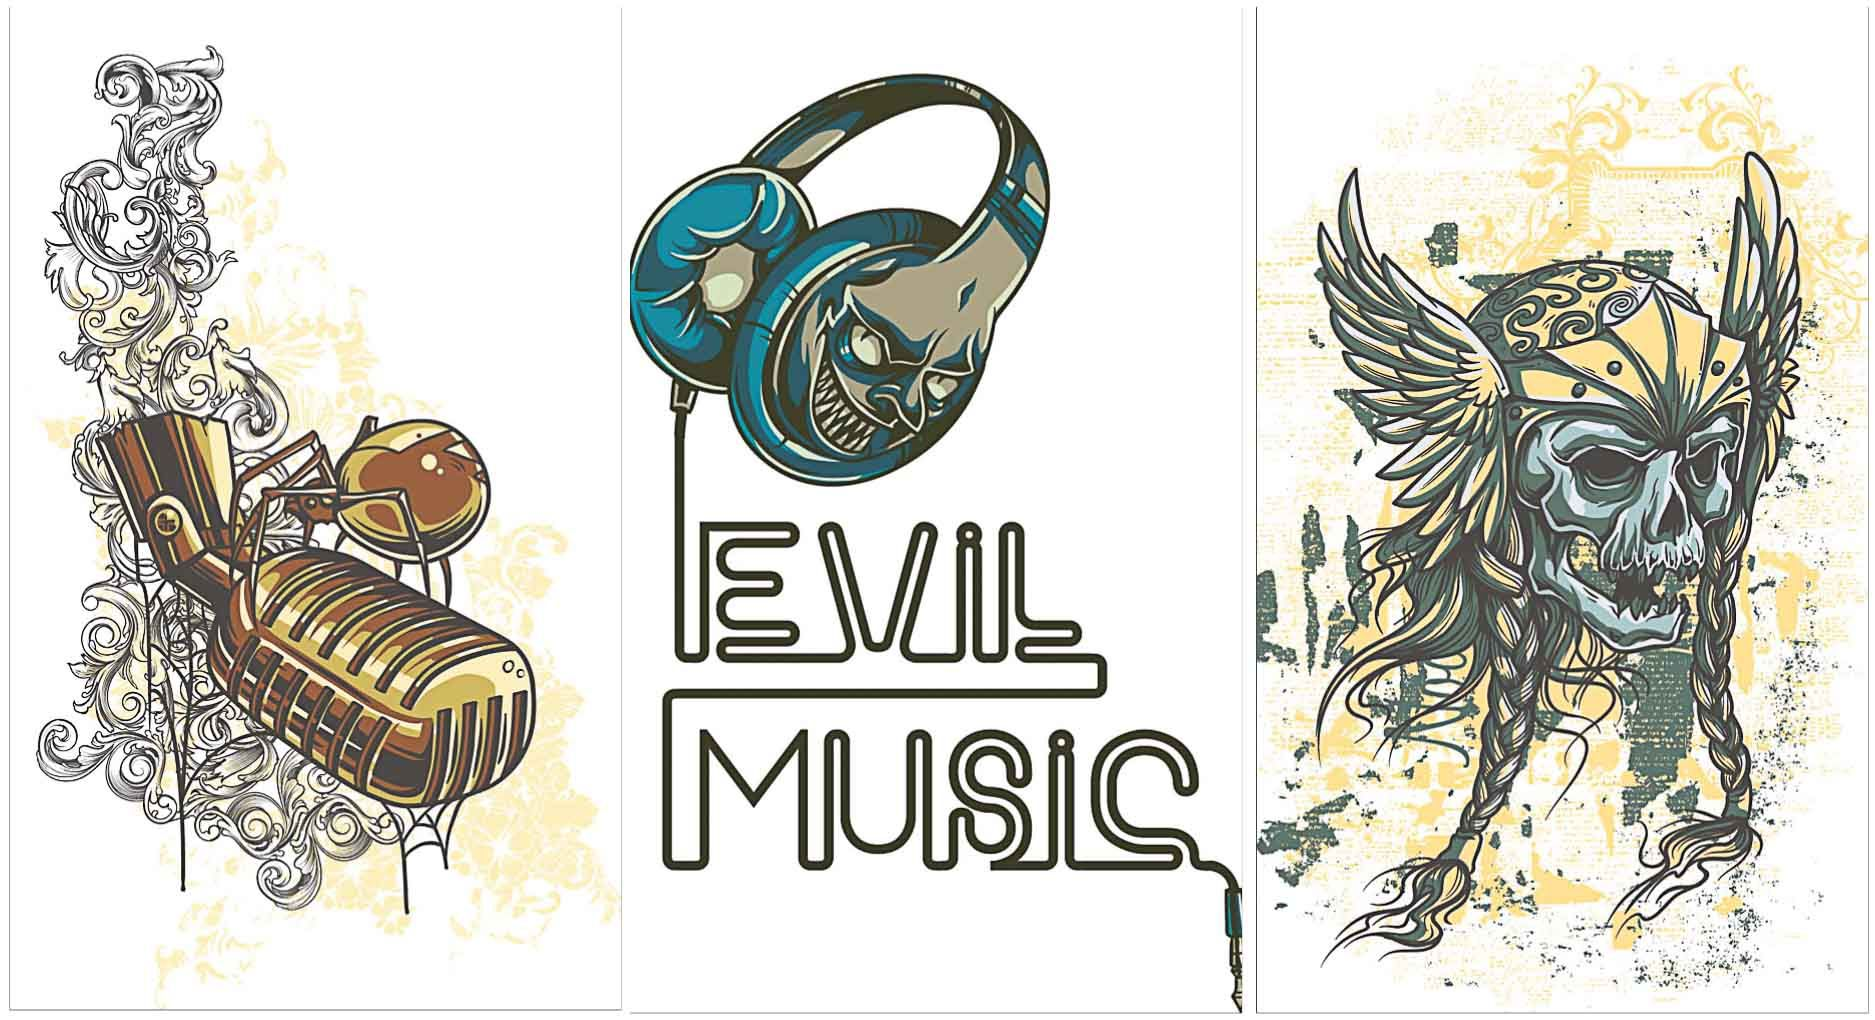 Tshirt prints templates with grunge music vector Set of 3